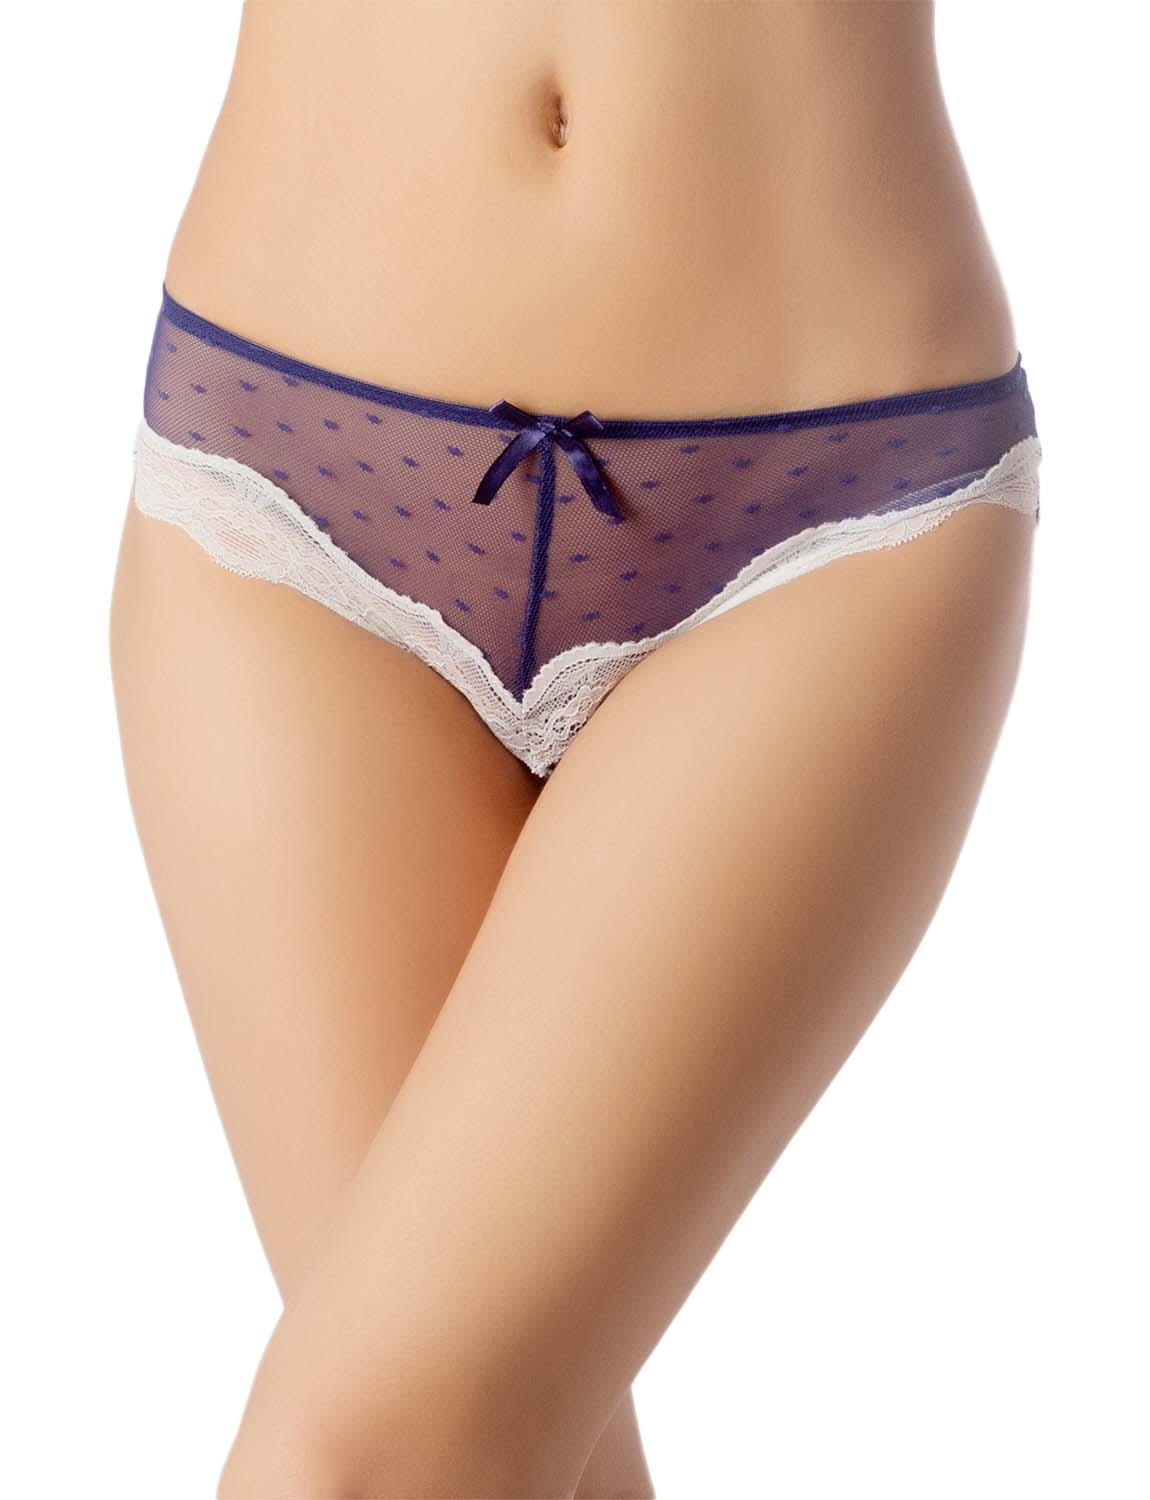 Women's Lace See-Through Mesh Breathable Underwear Low Rise Hipster Panty, Size: L, Royal